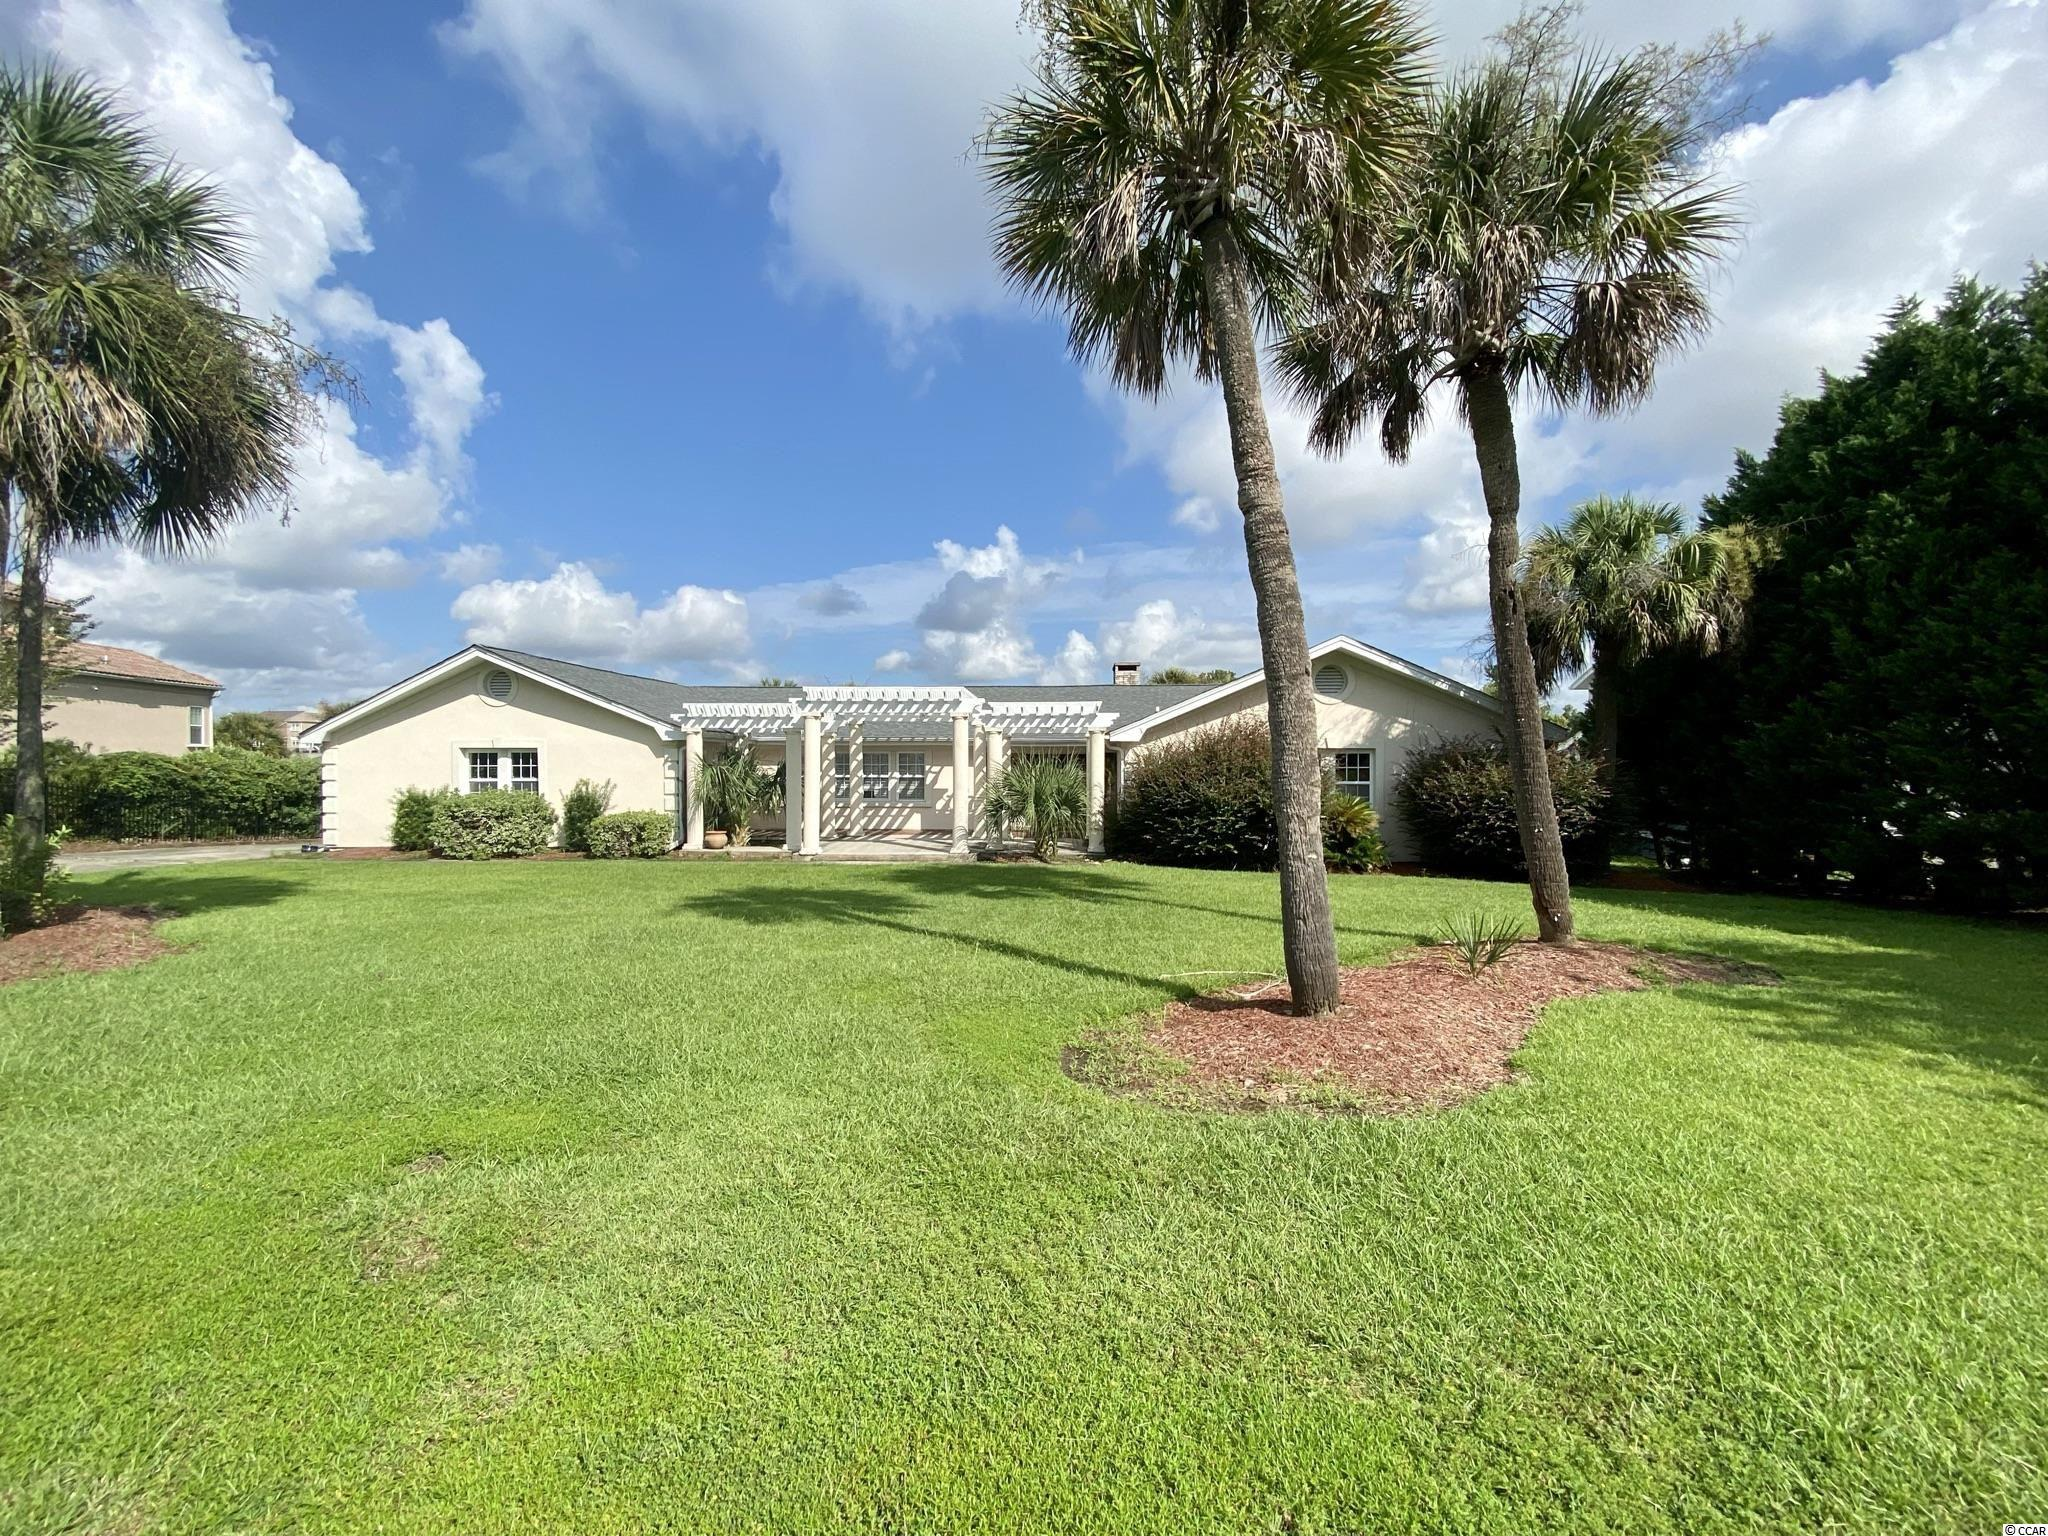 3850 Hobcaw Dr. Myrtle Beach, SC 29577